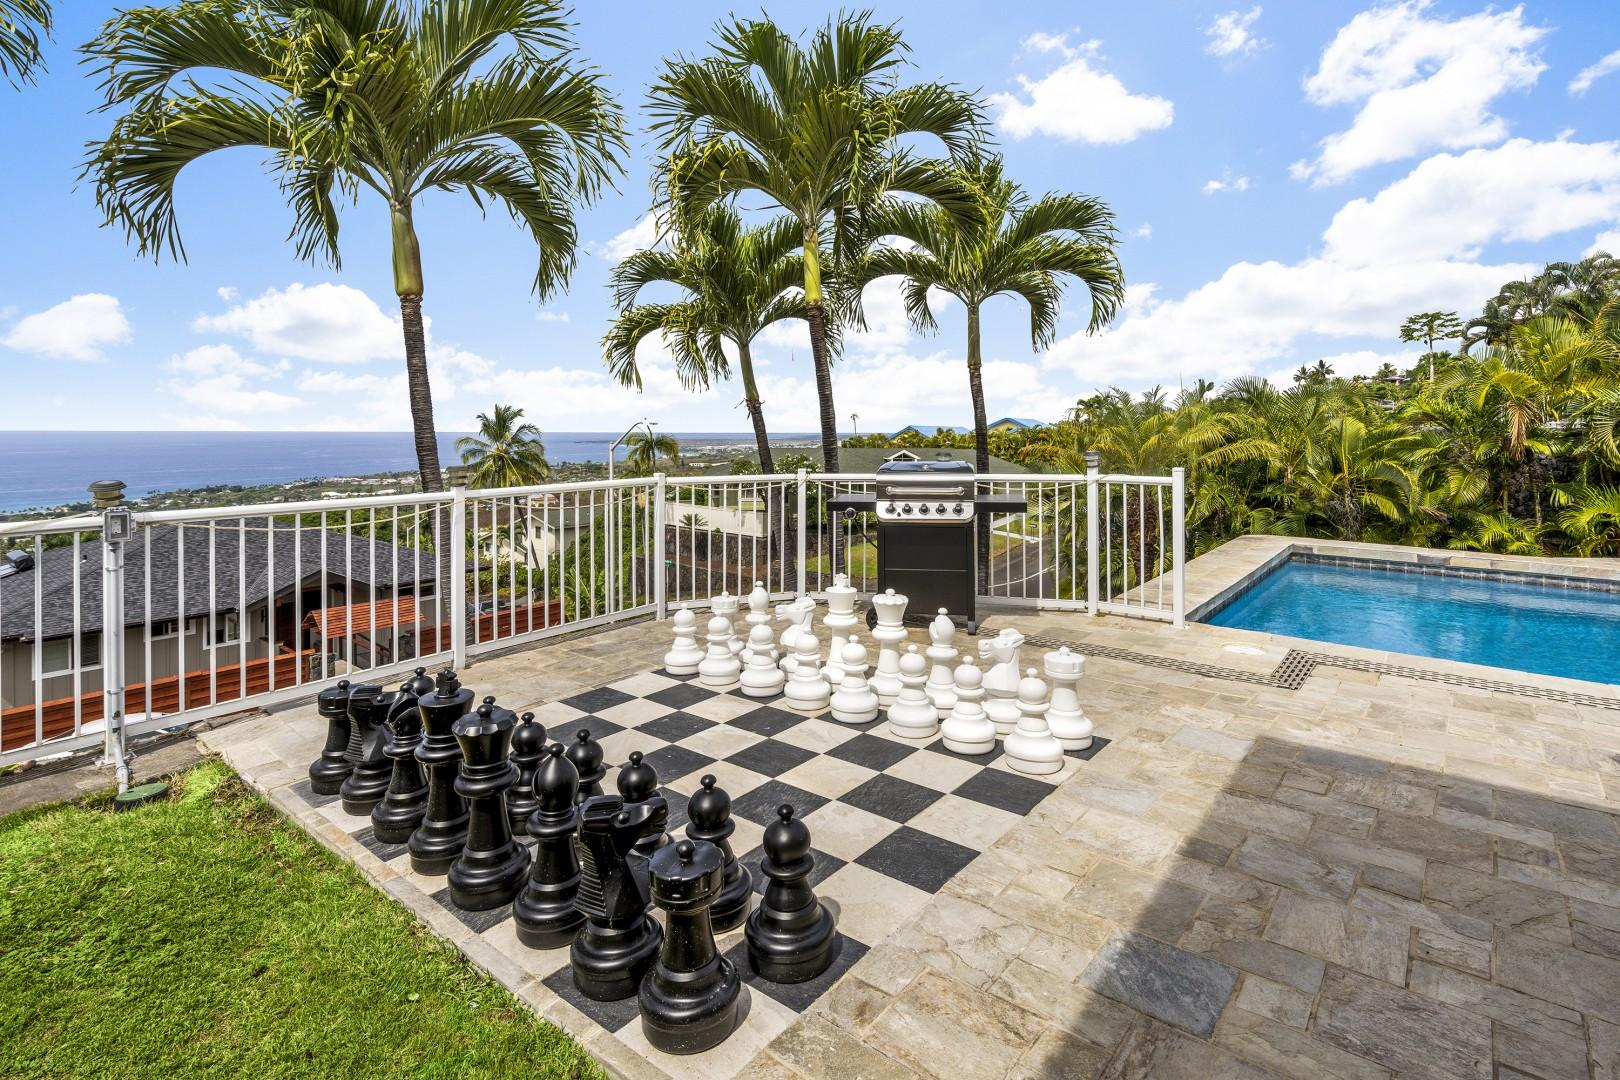 Enjoy countless hours of fun with the oversized chess set pool side!